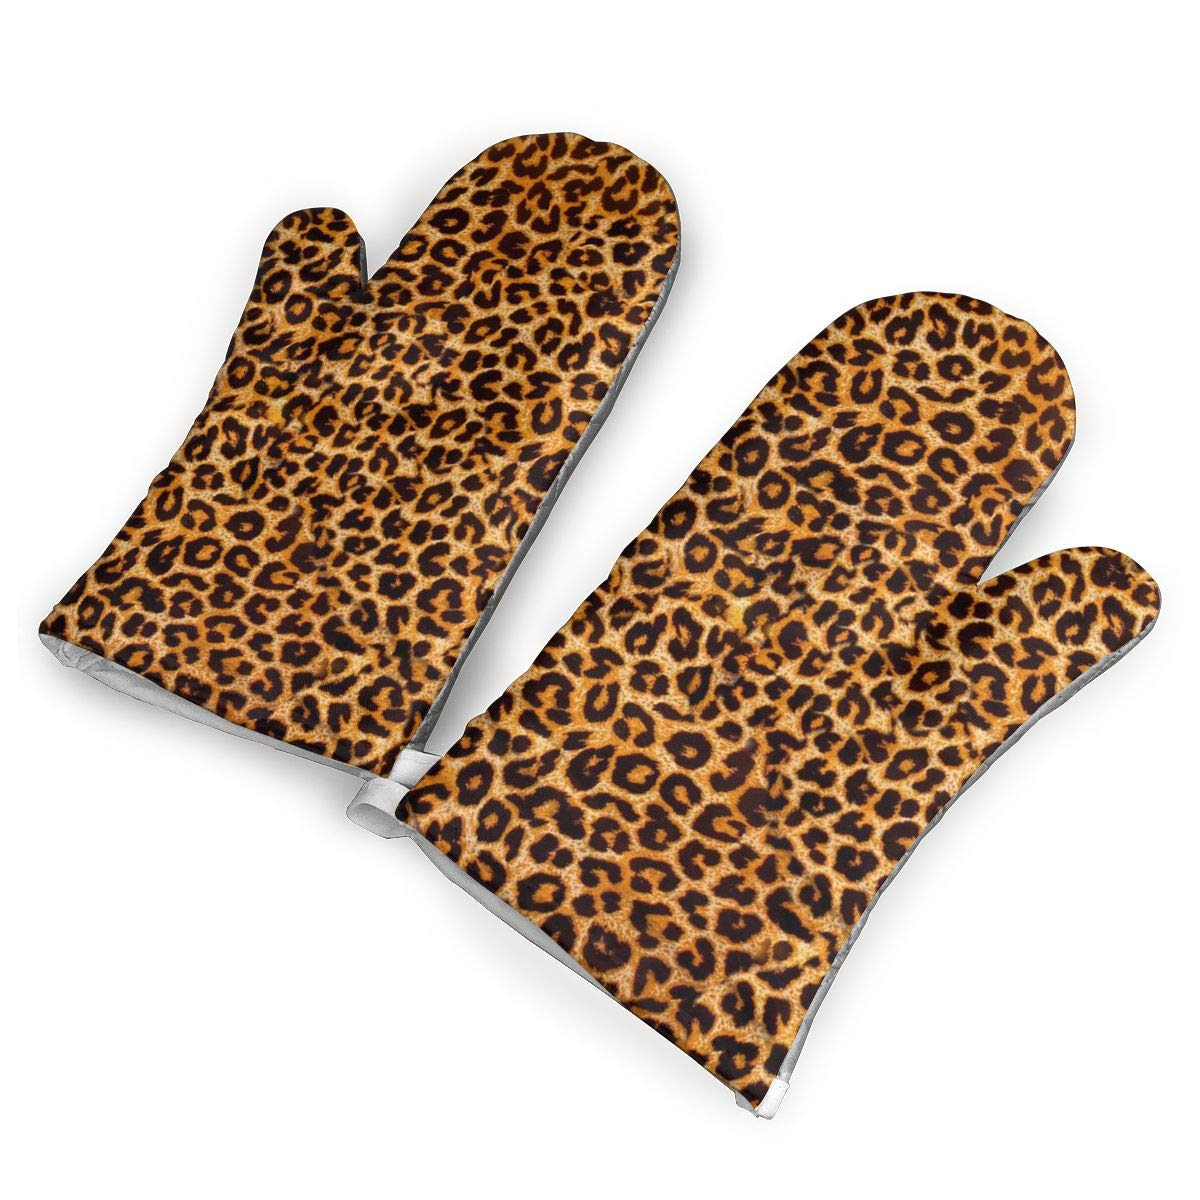 Leopard Print Heat Resistant Kitchen Oven Mitt with Non-Slip Printed, Set of 2 Oven Gloves for BBQ Cooking Baking, Grilling, Barbecue